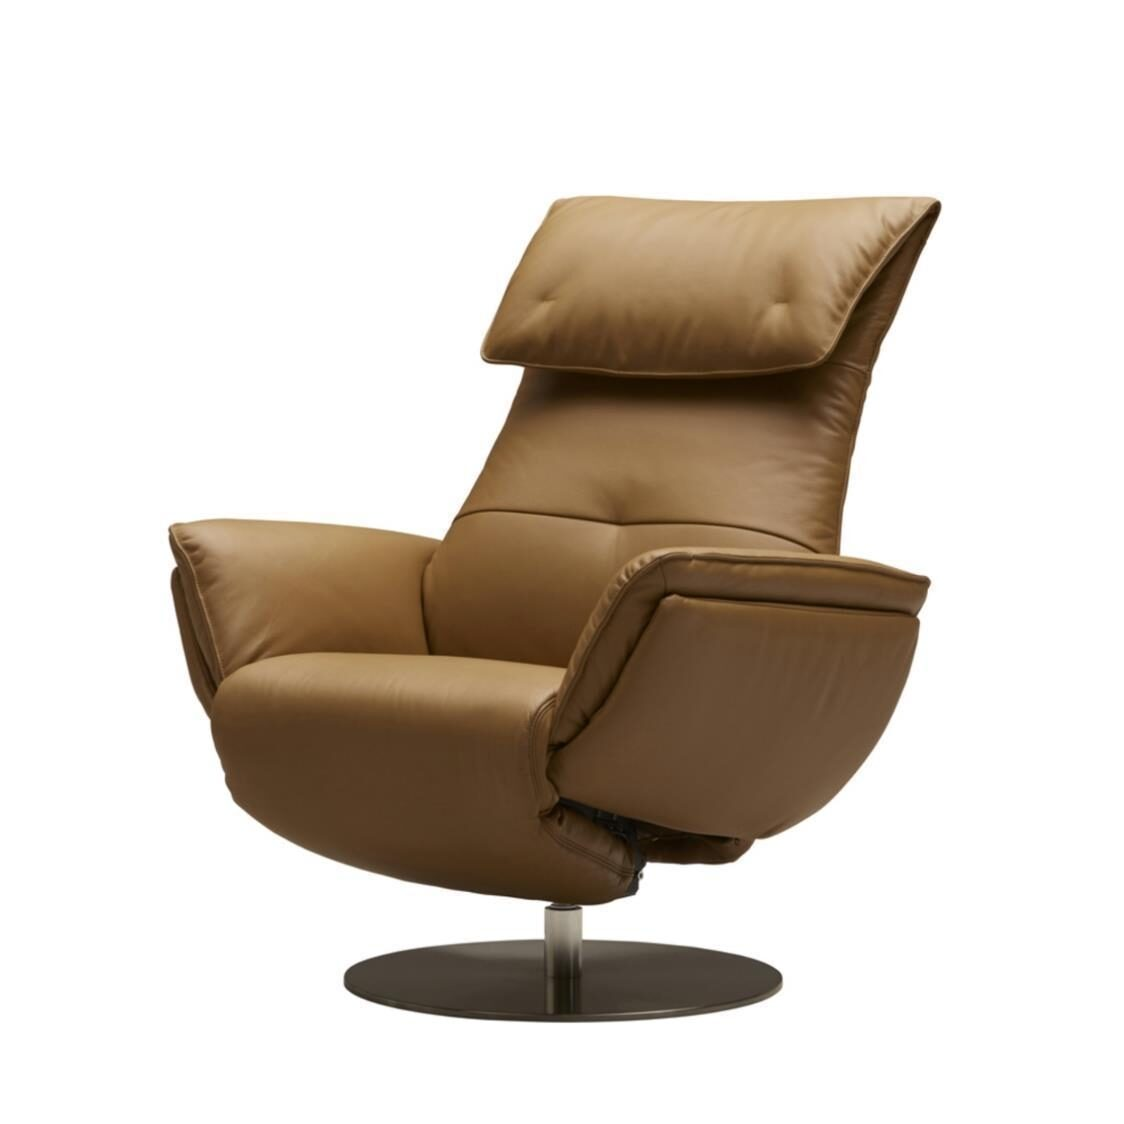 Iloom Wolke Chair - Full Leather L665L Camel